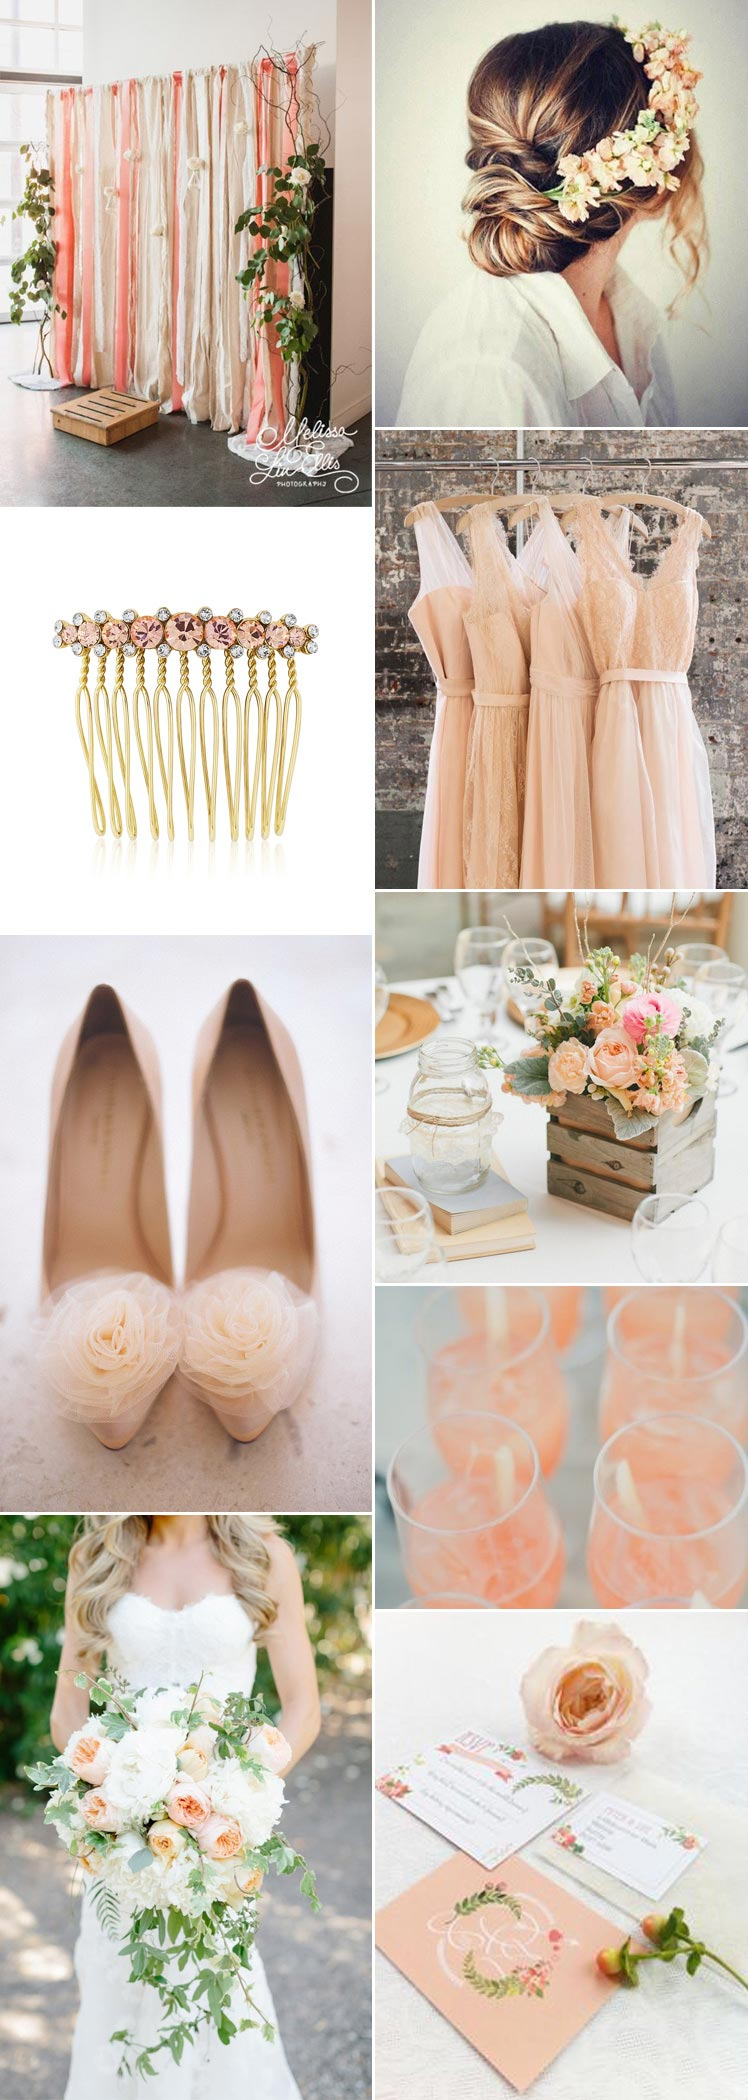 Pretty peach and cream wedding colour scheme ideas